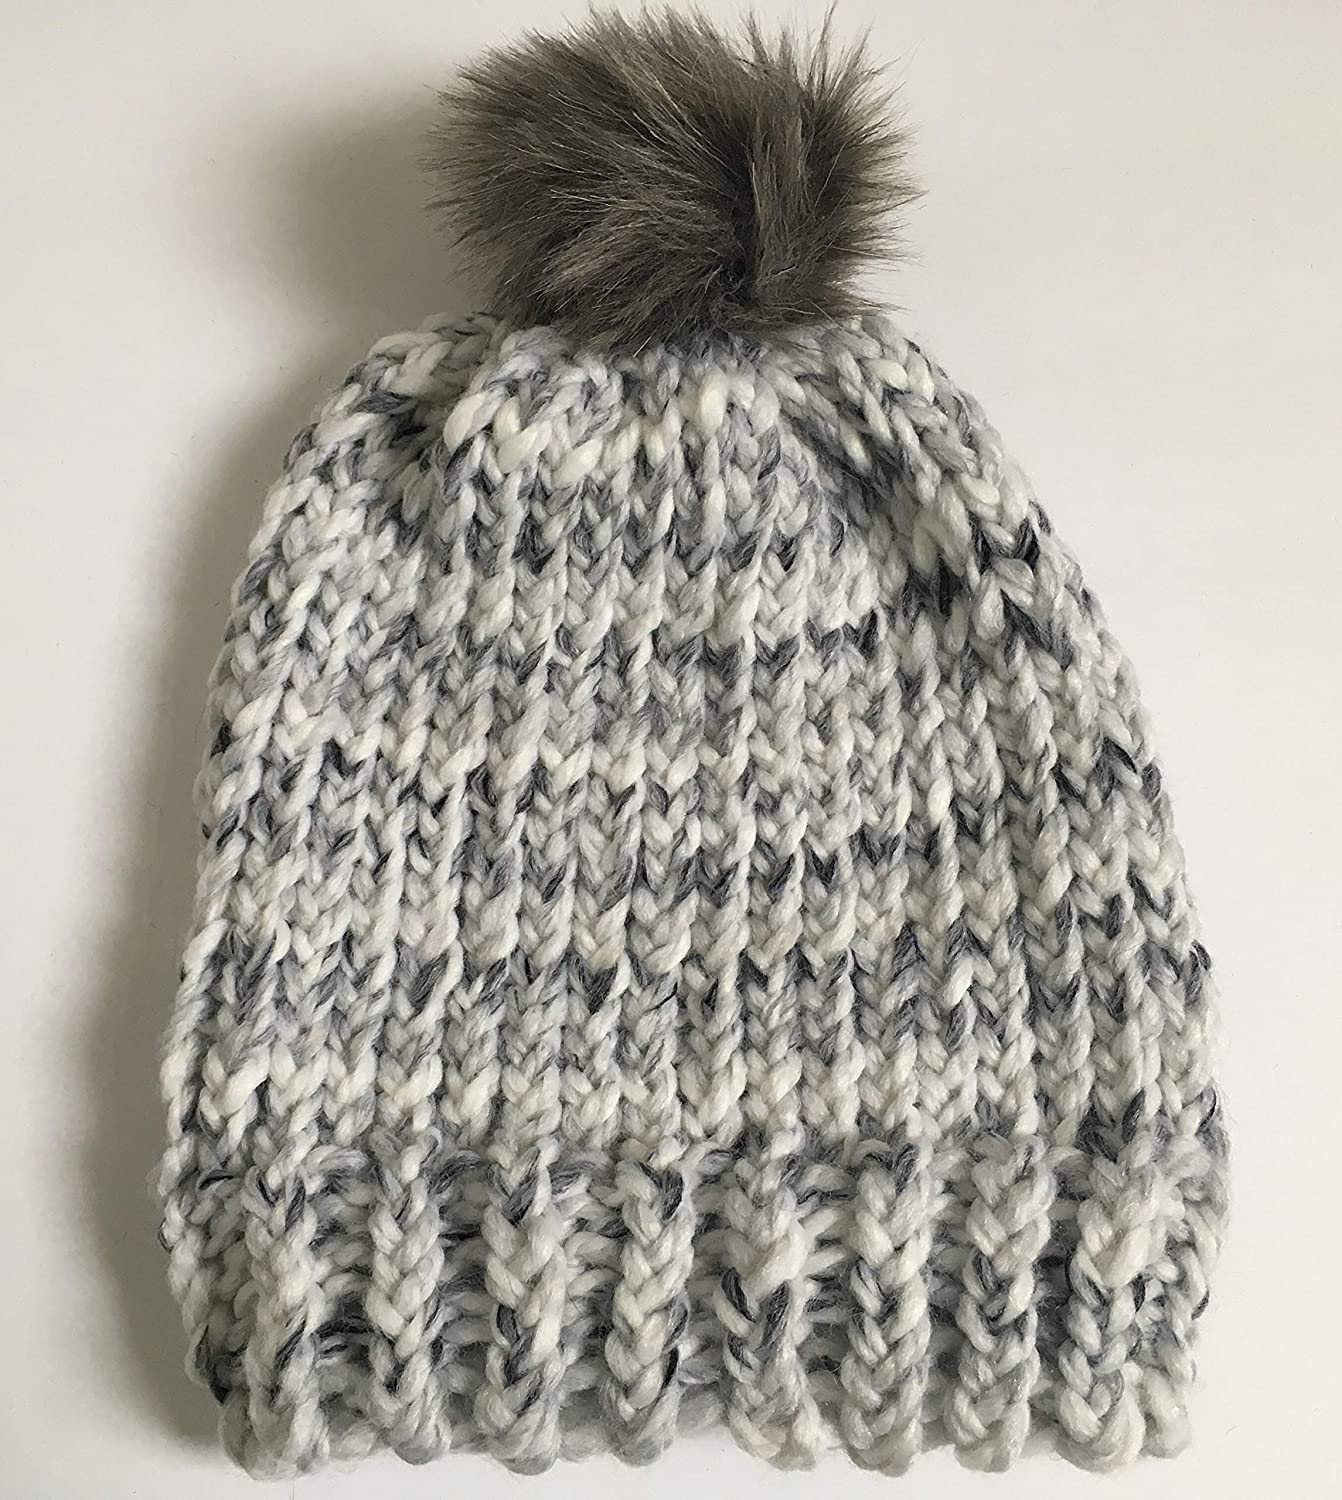 66eecae9a5319 Gray Marble Knit Hat with Faux Fur Pom Pom Request a custom order and have  something made just for you. This seller usually responds within 24 hours.